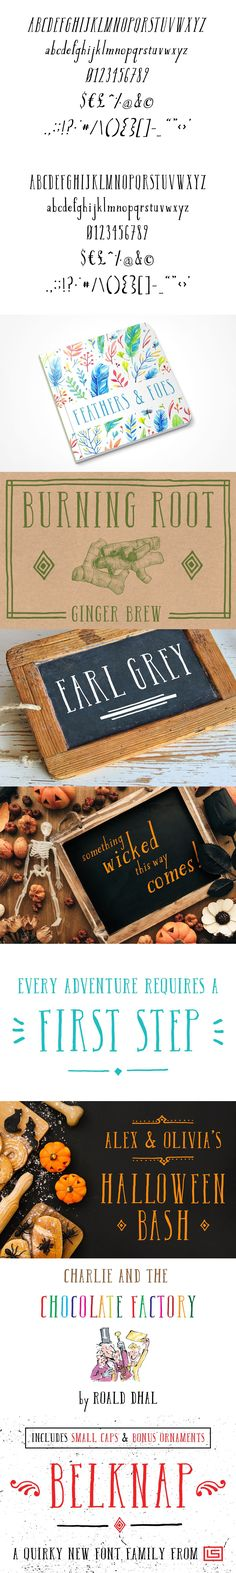 Belknap is a beautifully hand-drawn and versatile display font family. It consists of carefully drawn characters with rough edges and a semi-wobbly look that Alex And Olivia, Halloween Fonts, Small Caps, Chocolate Factory, Holiday Themes, Font Family, New Fonts, How To Make Ornaments, Project Yourself